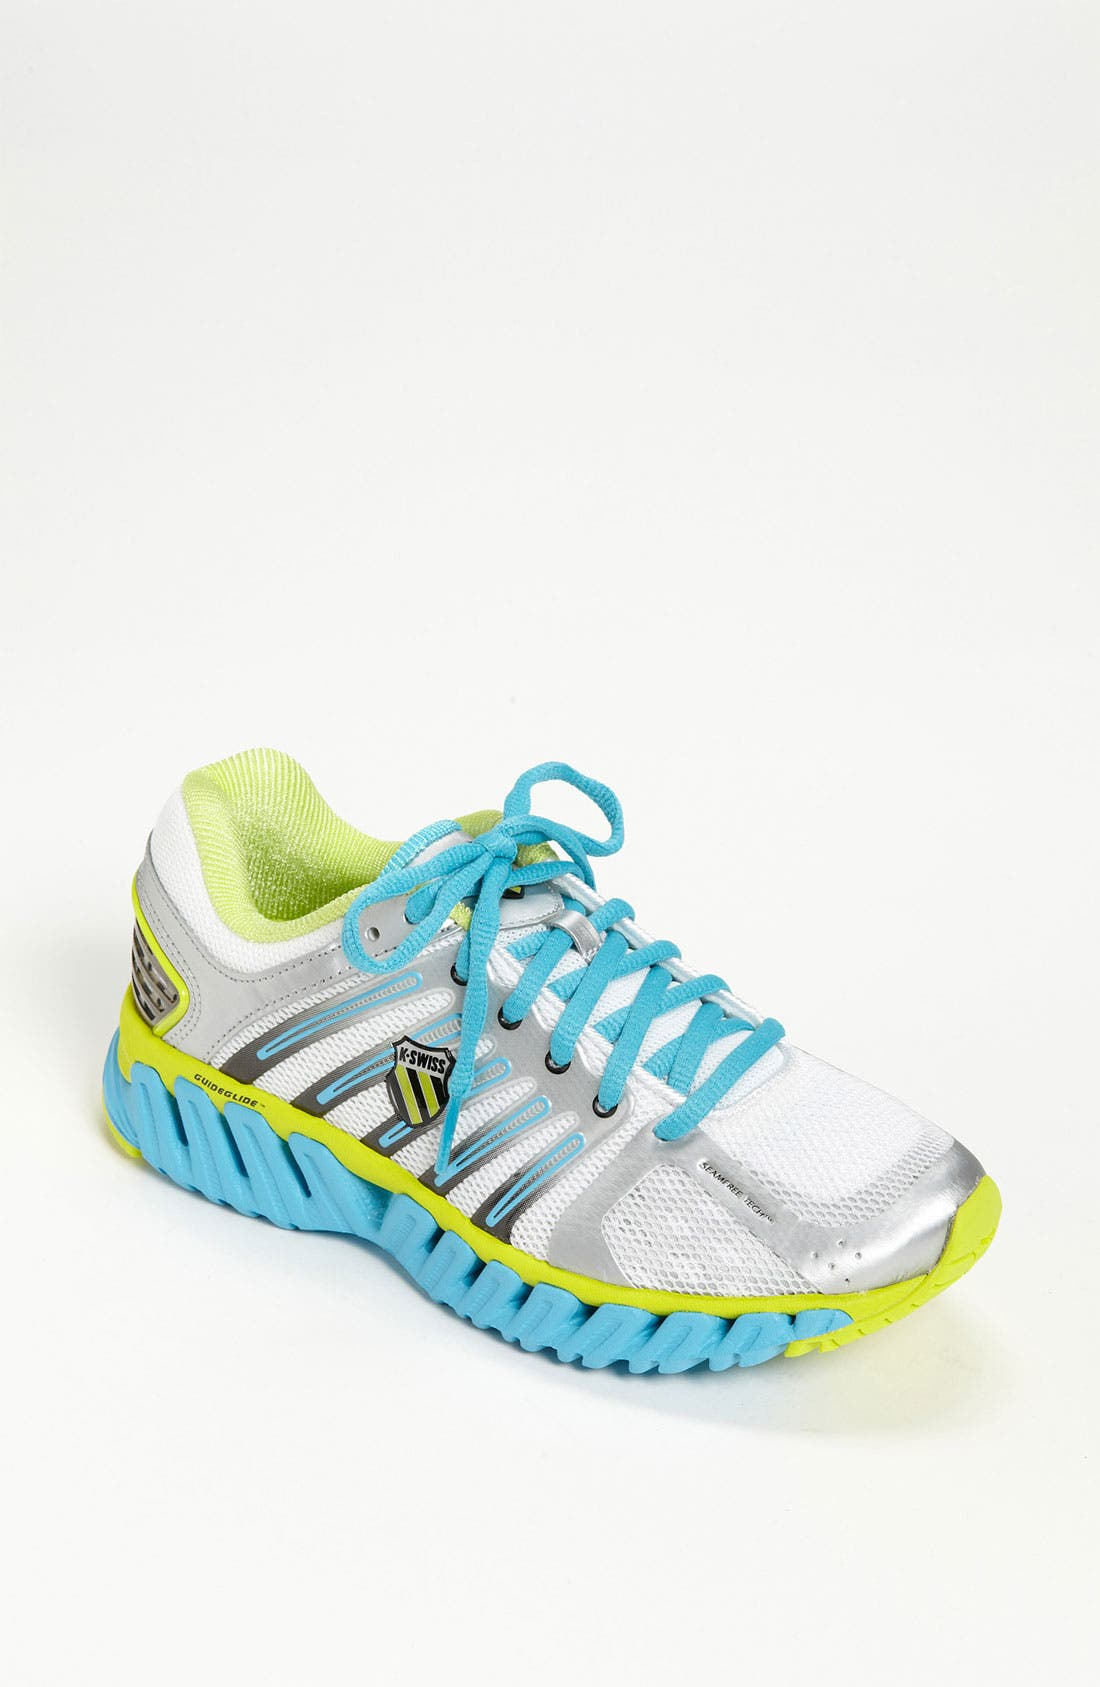 Main Image - K-Swiss 'Blade Max' Training Shoe (Women)